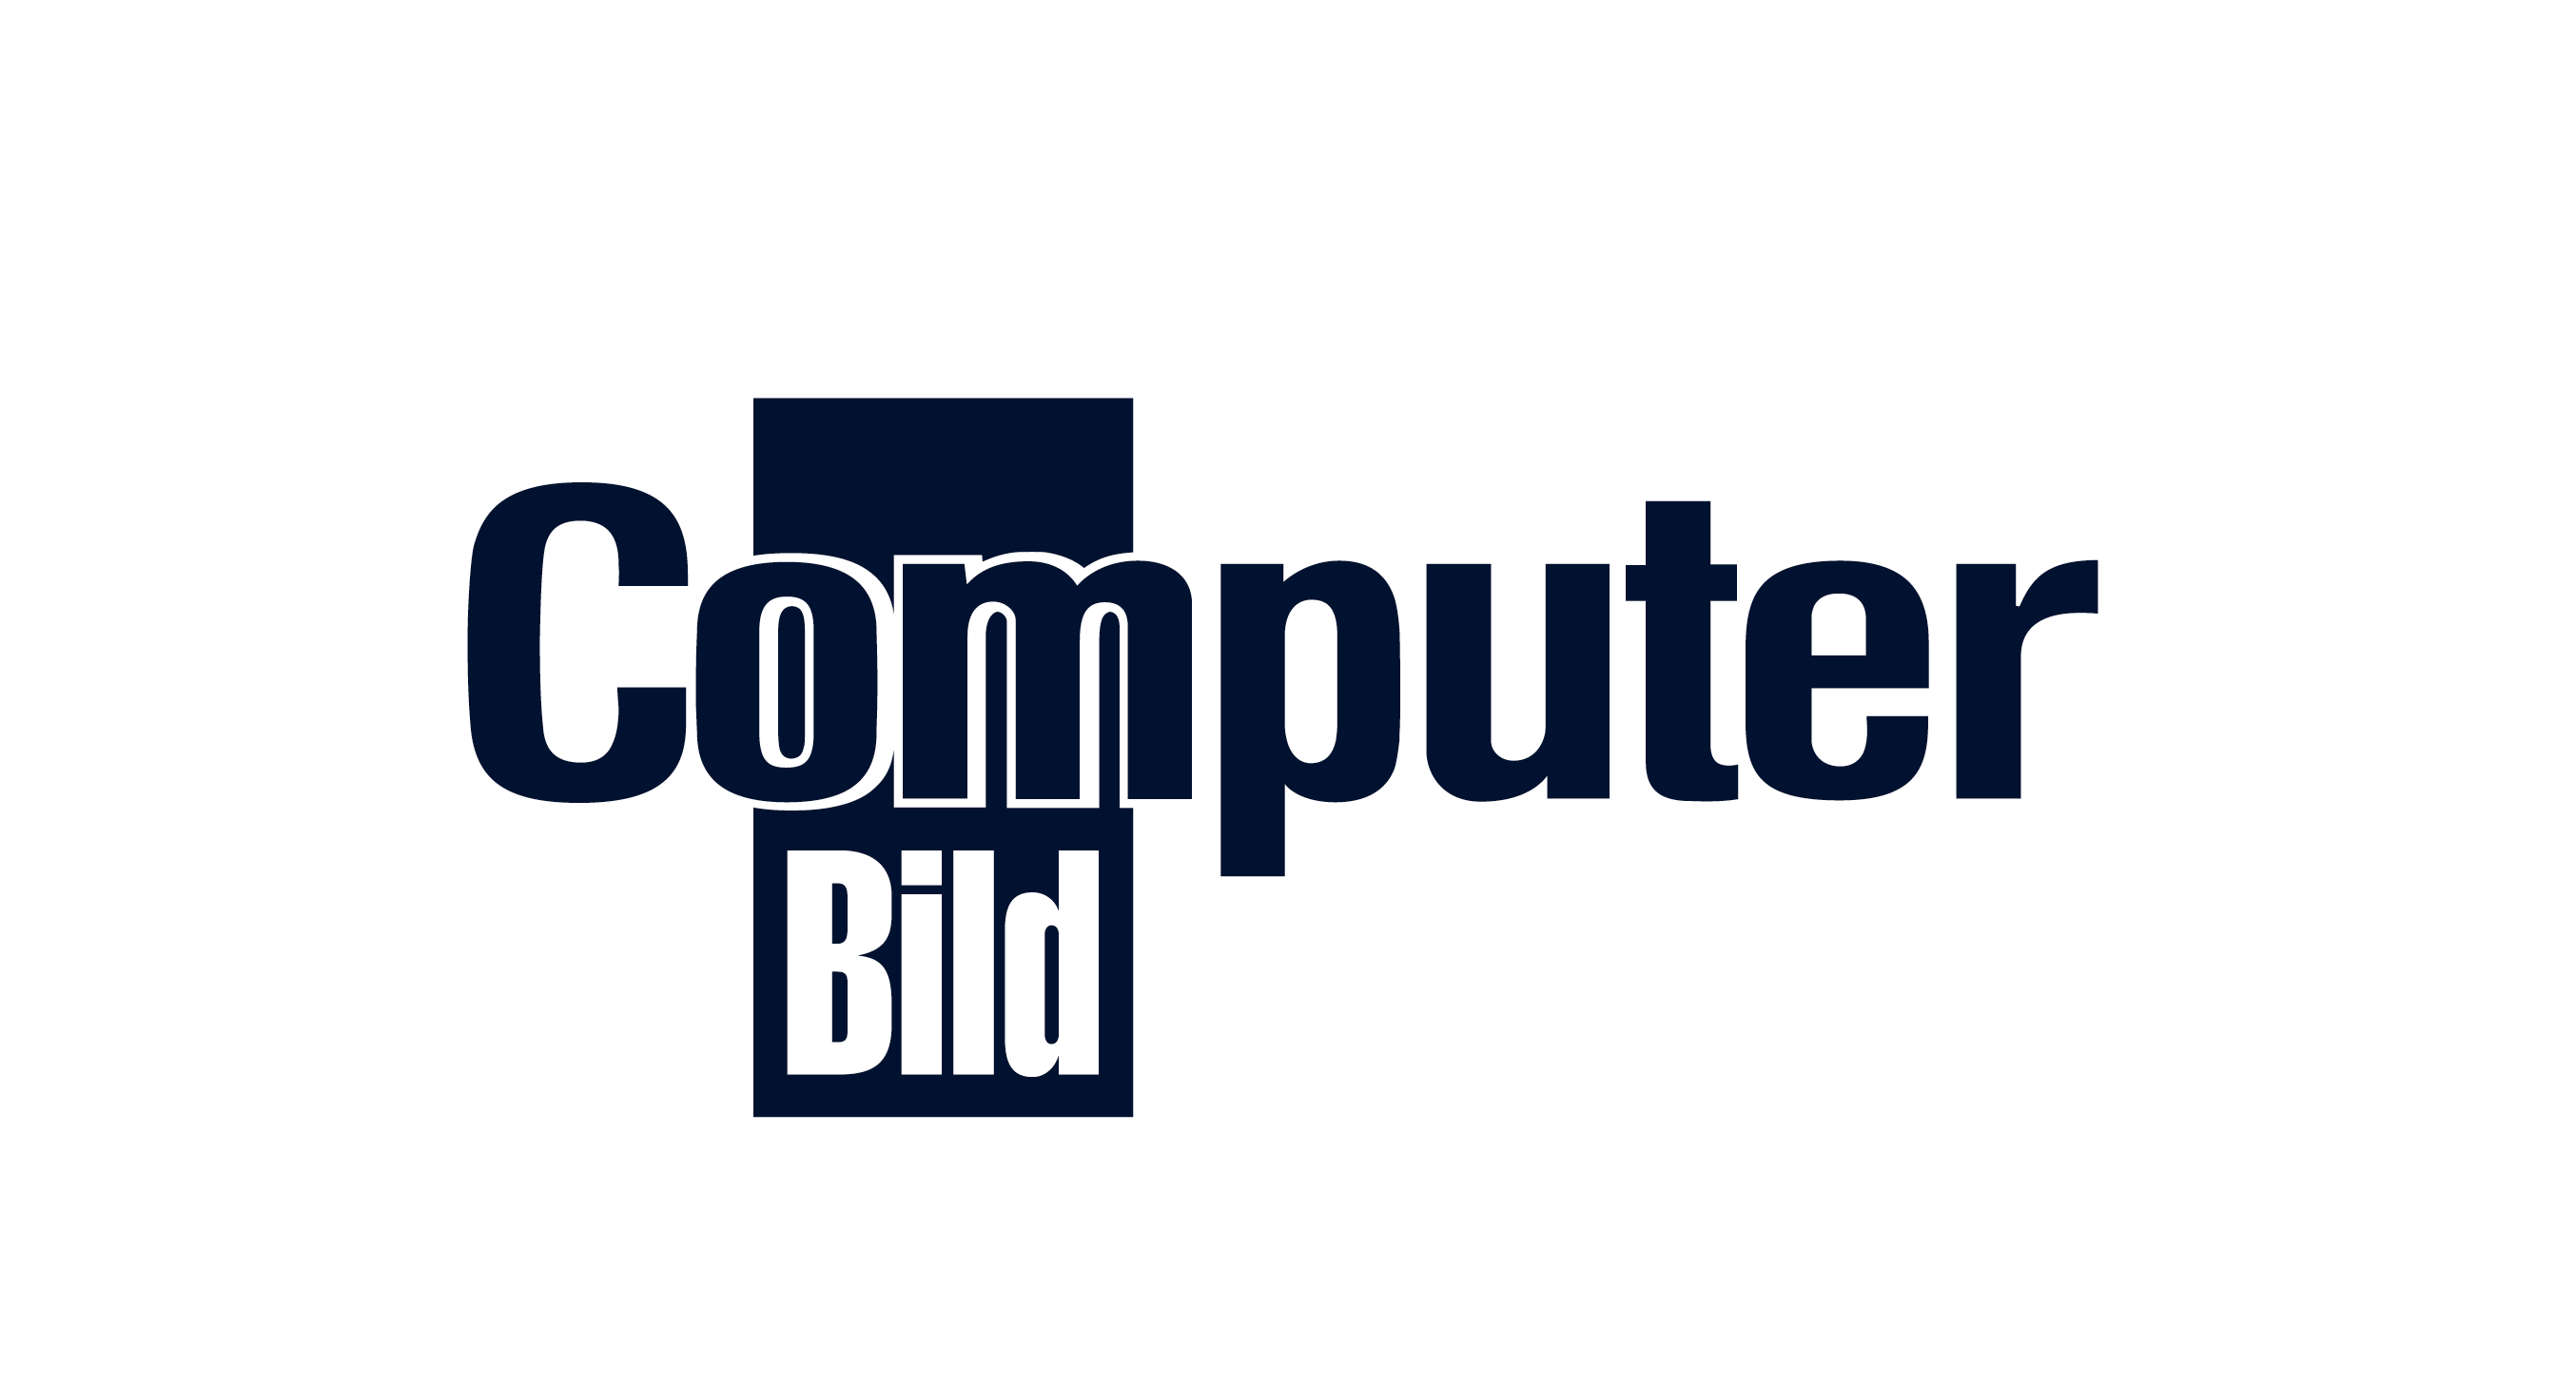 Computer Bild logo in conichi blue